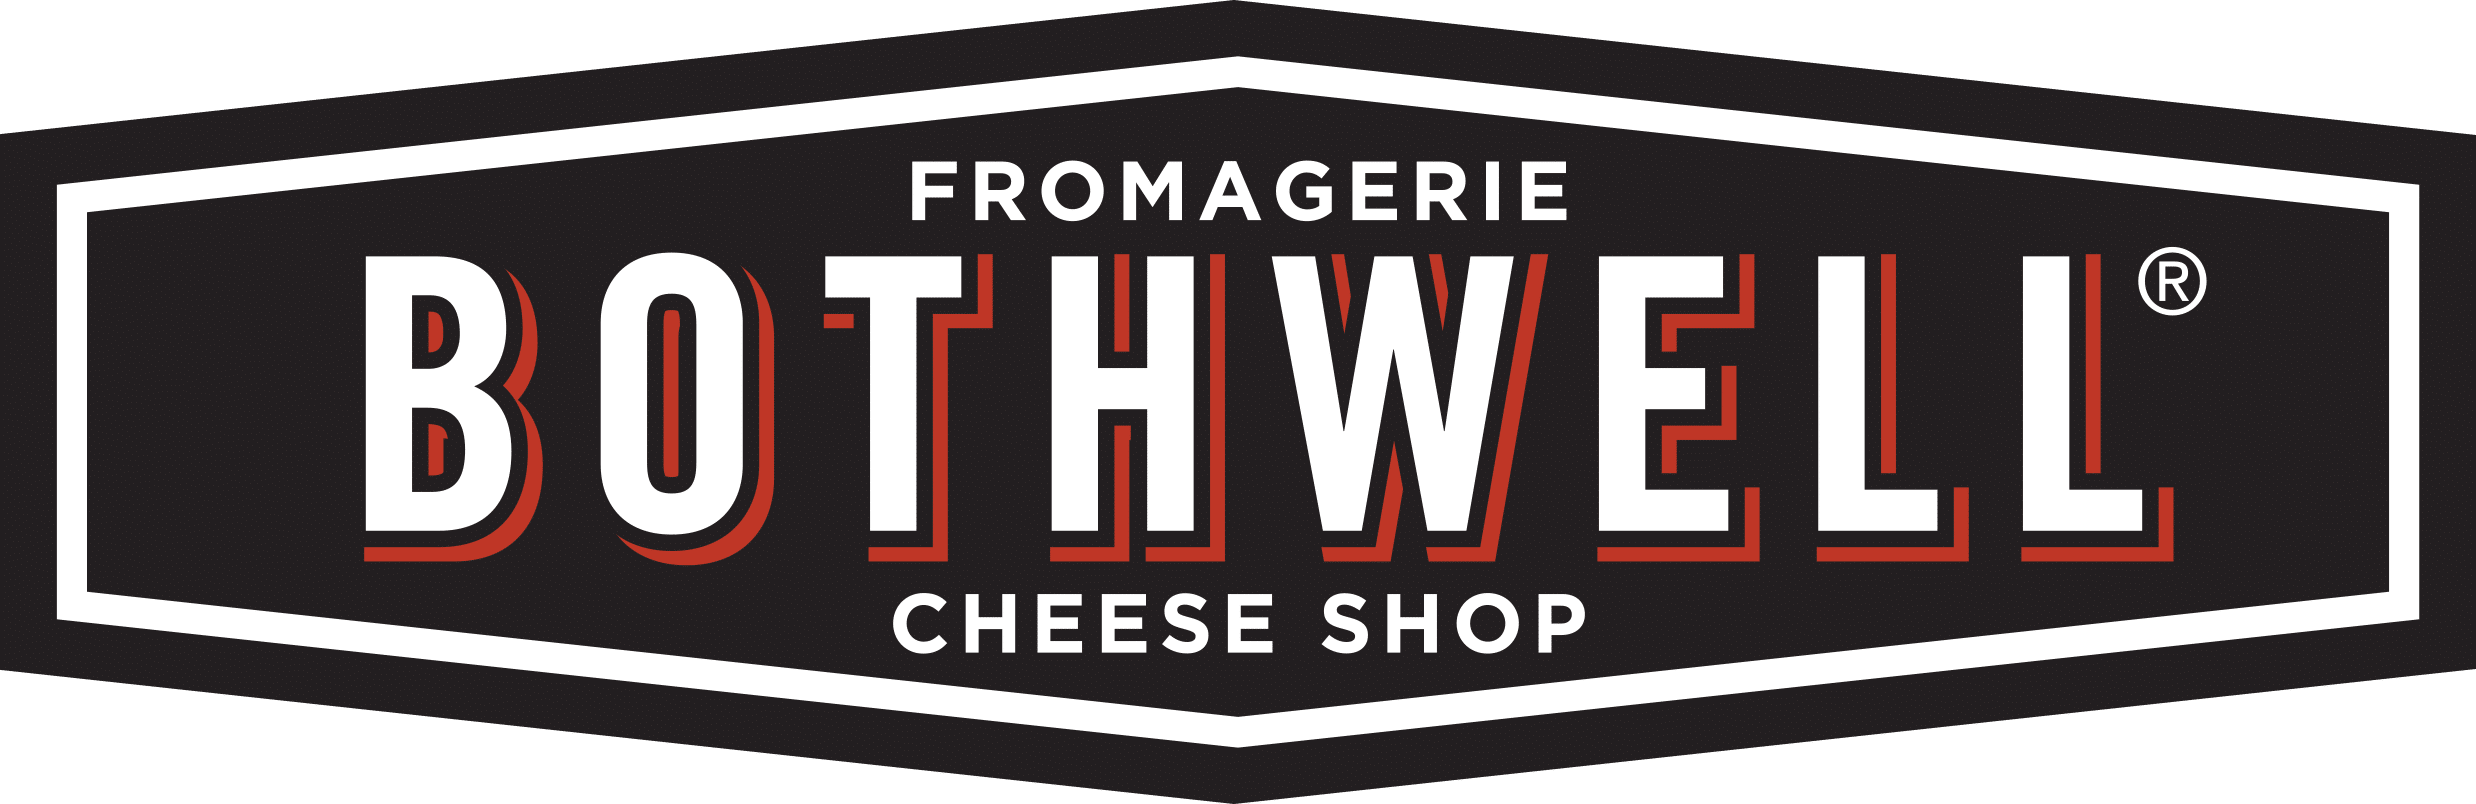 Bothwell Cheese Shop Logo